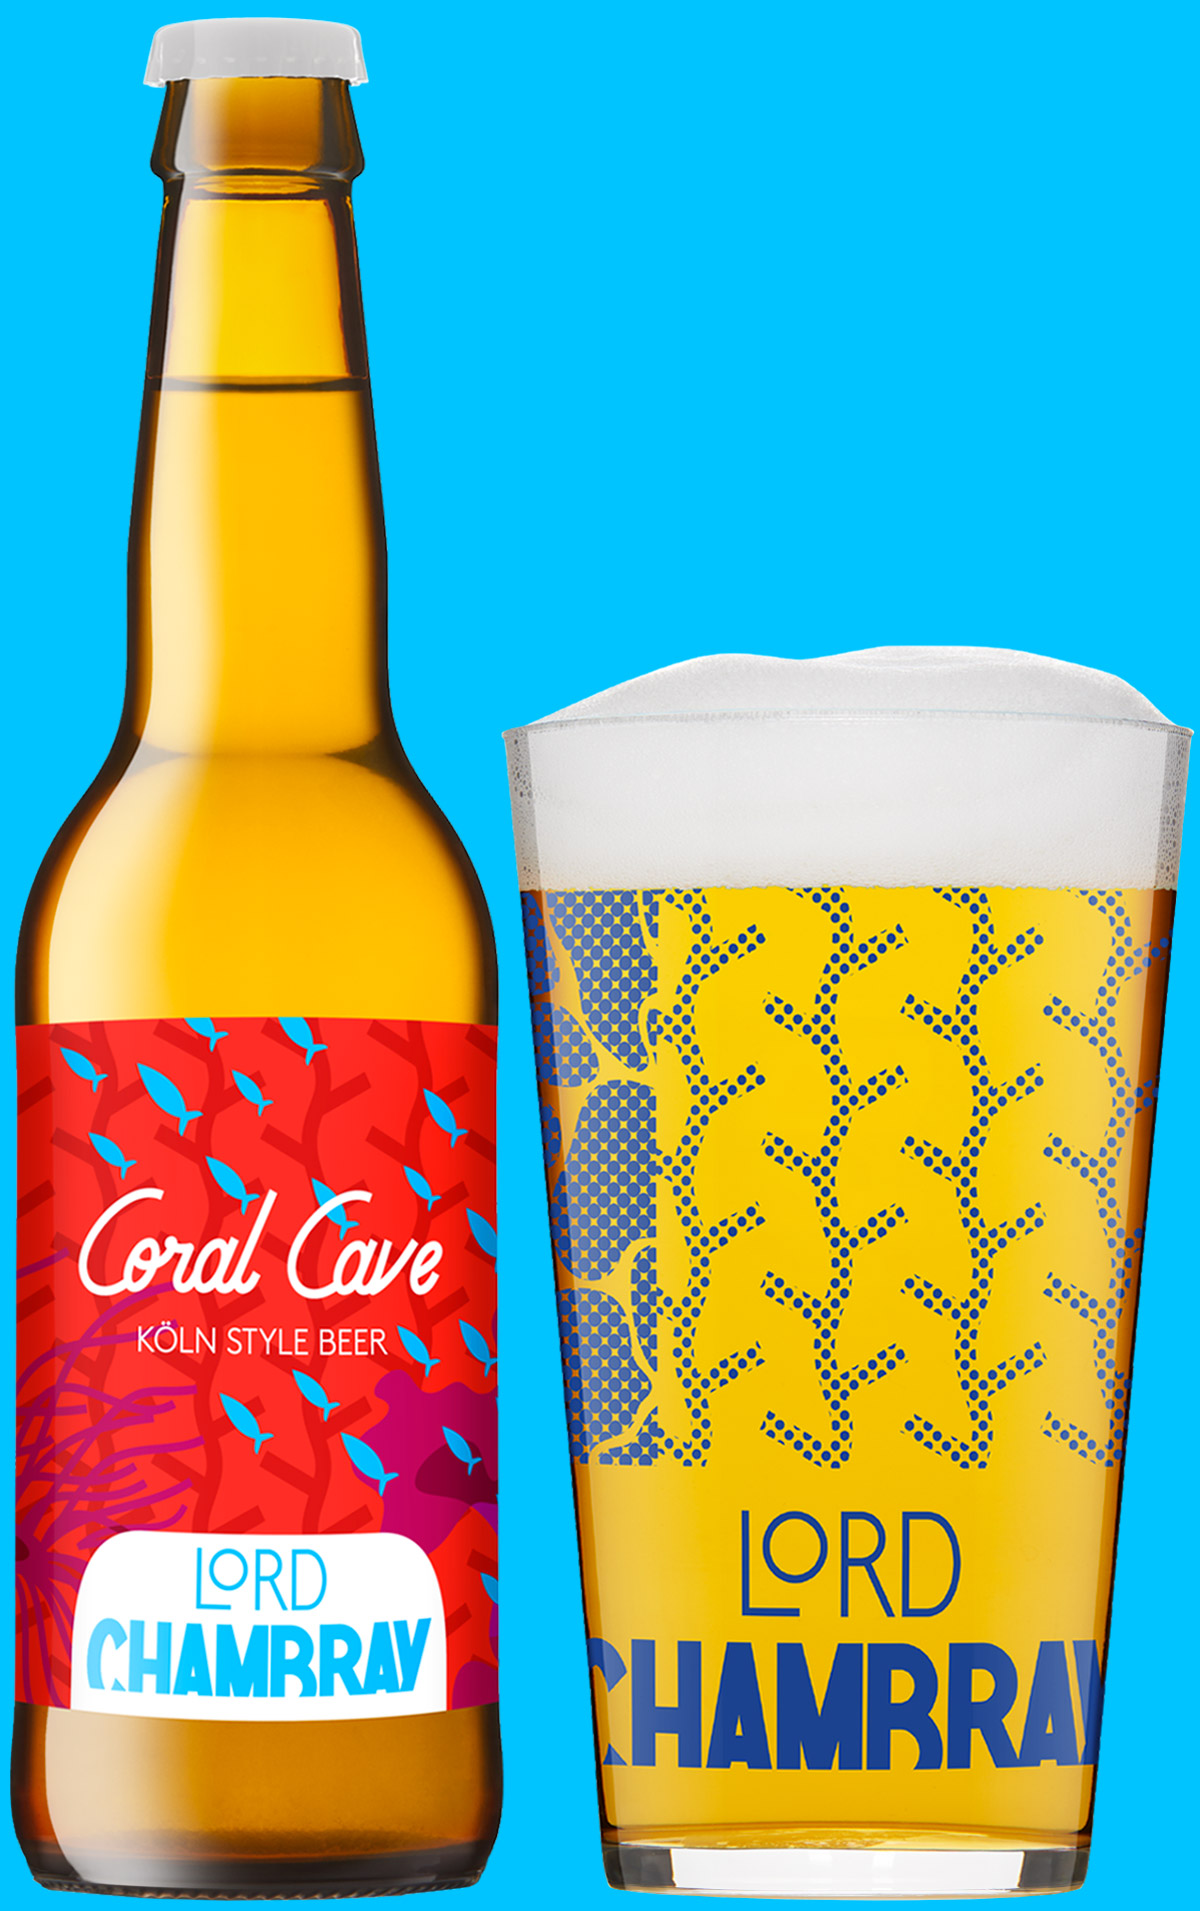 Lord Chambray – Craft Beer from Malta CORAL CAVE